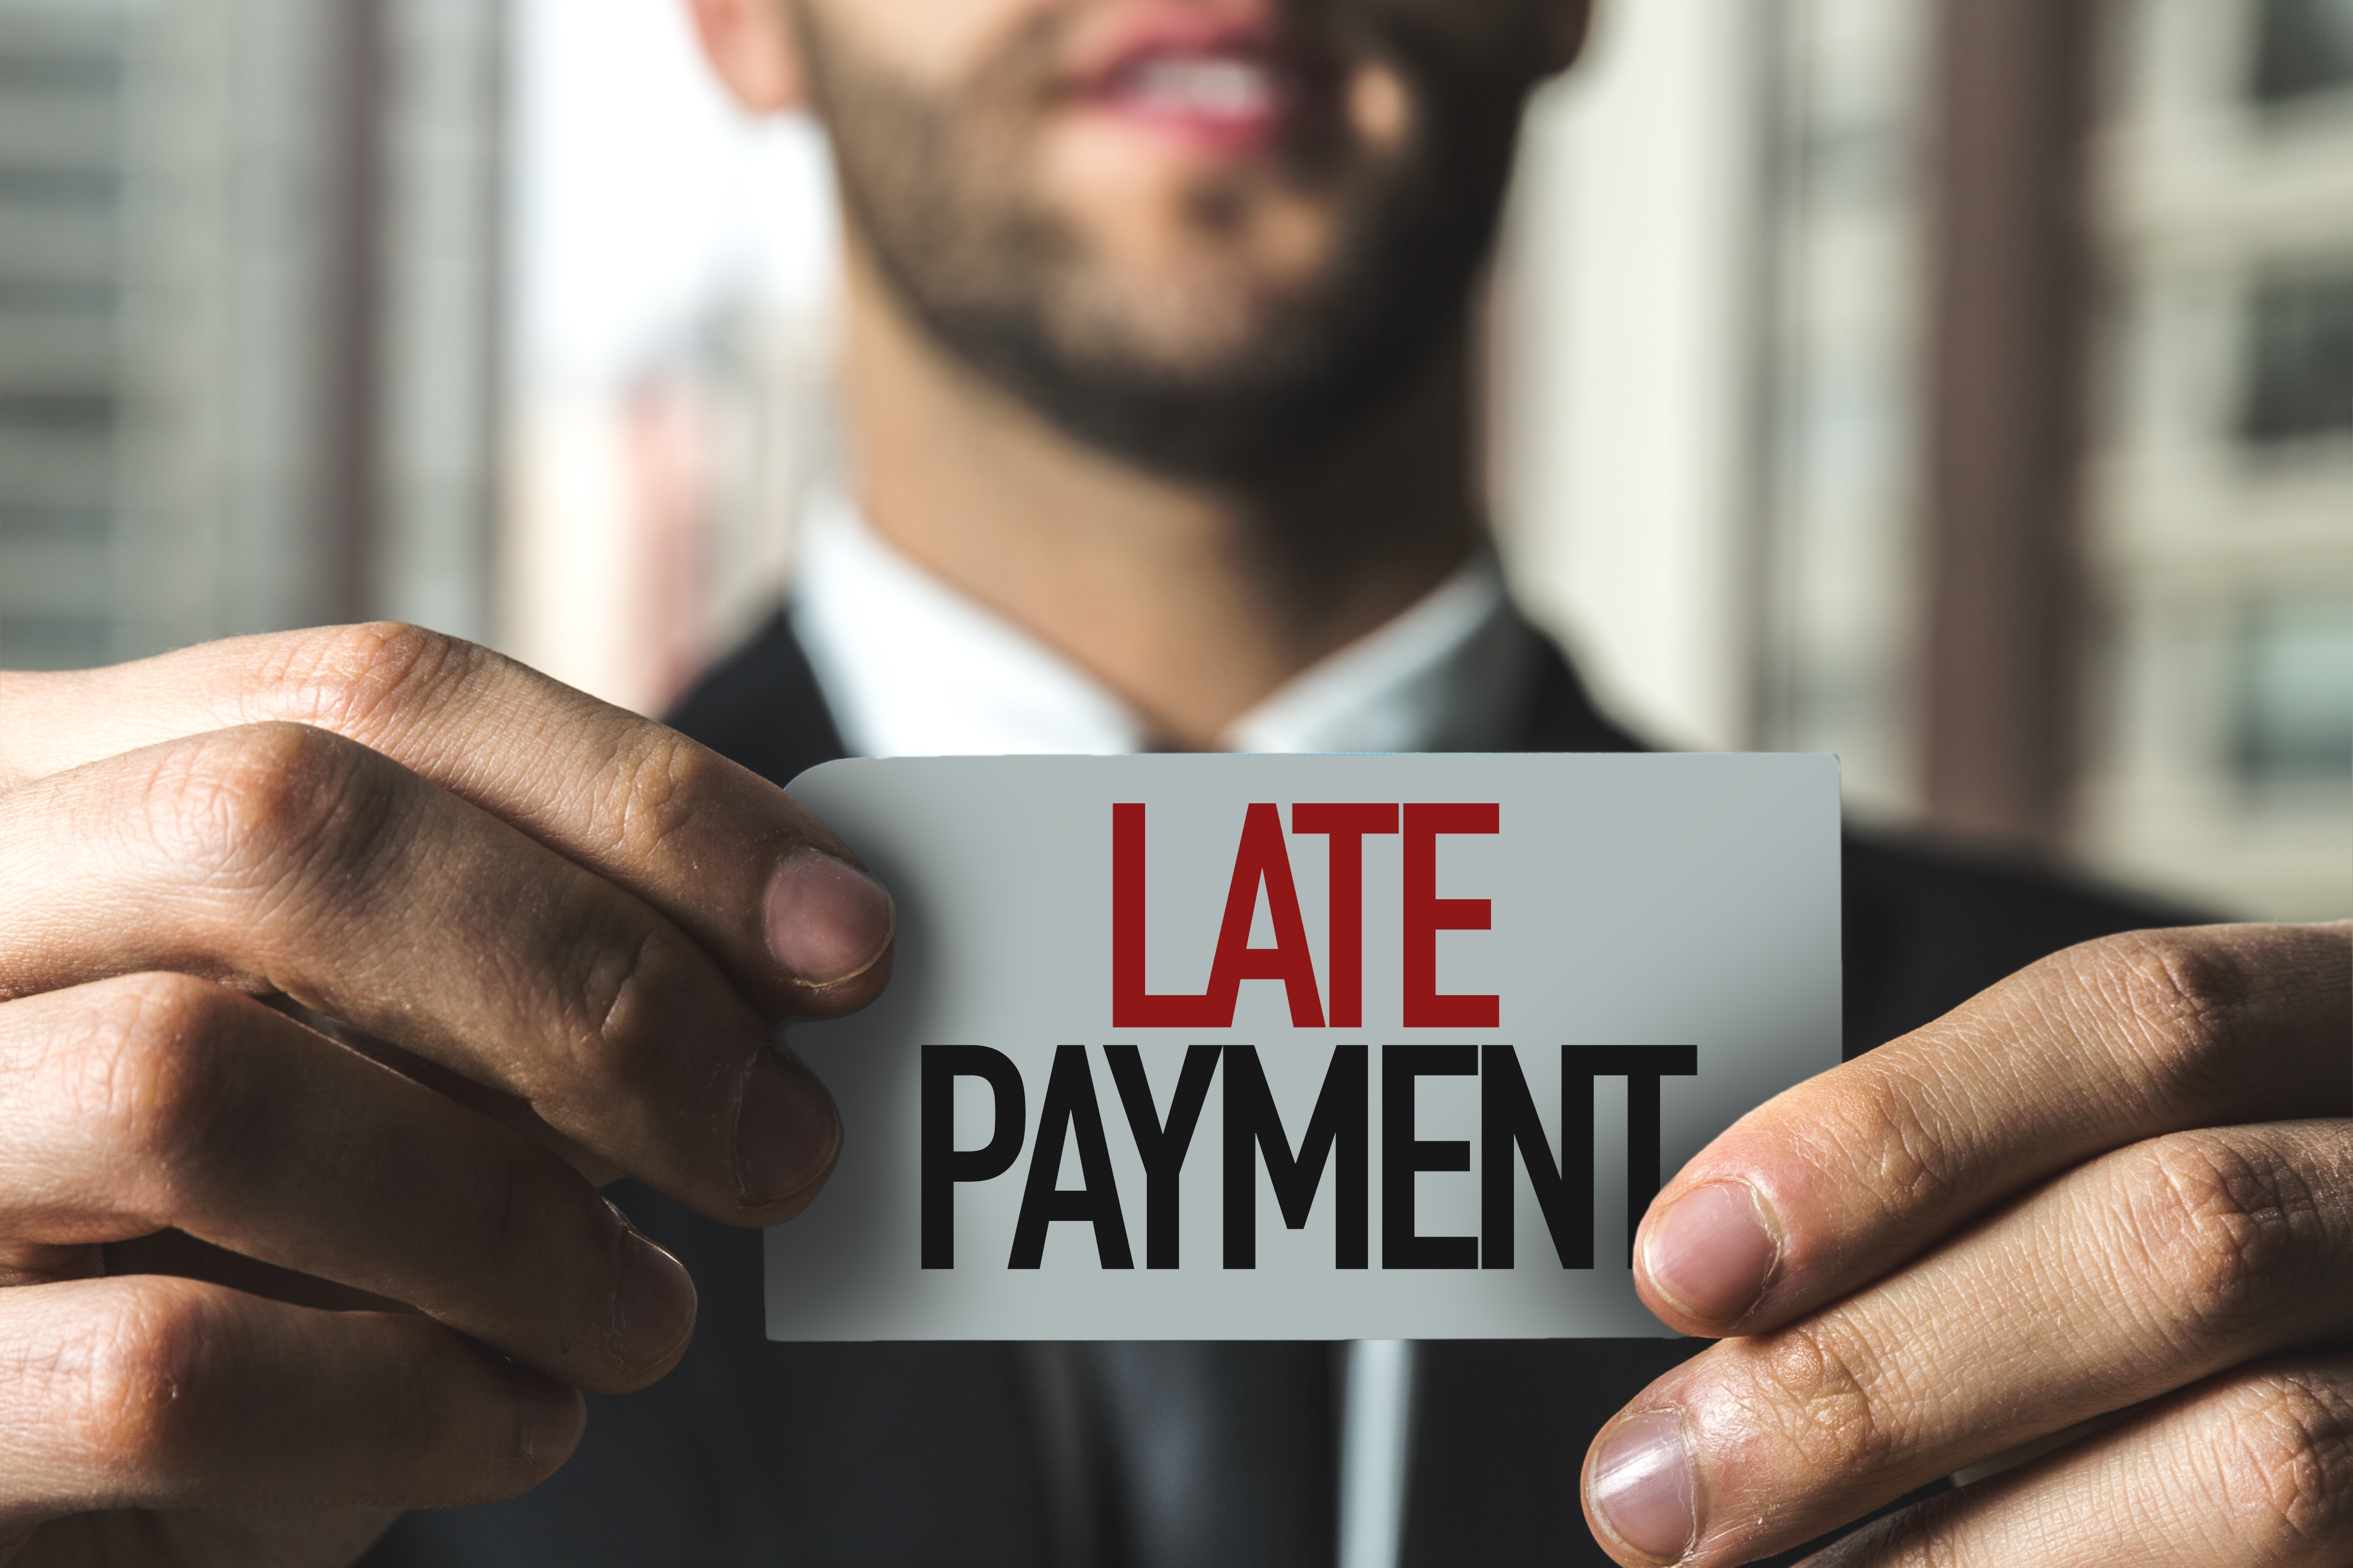 man holding late payment sign